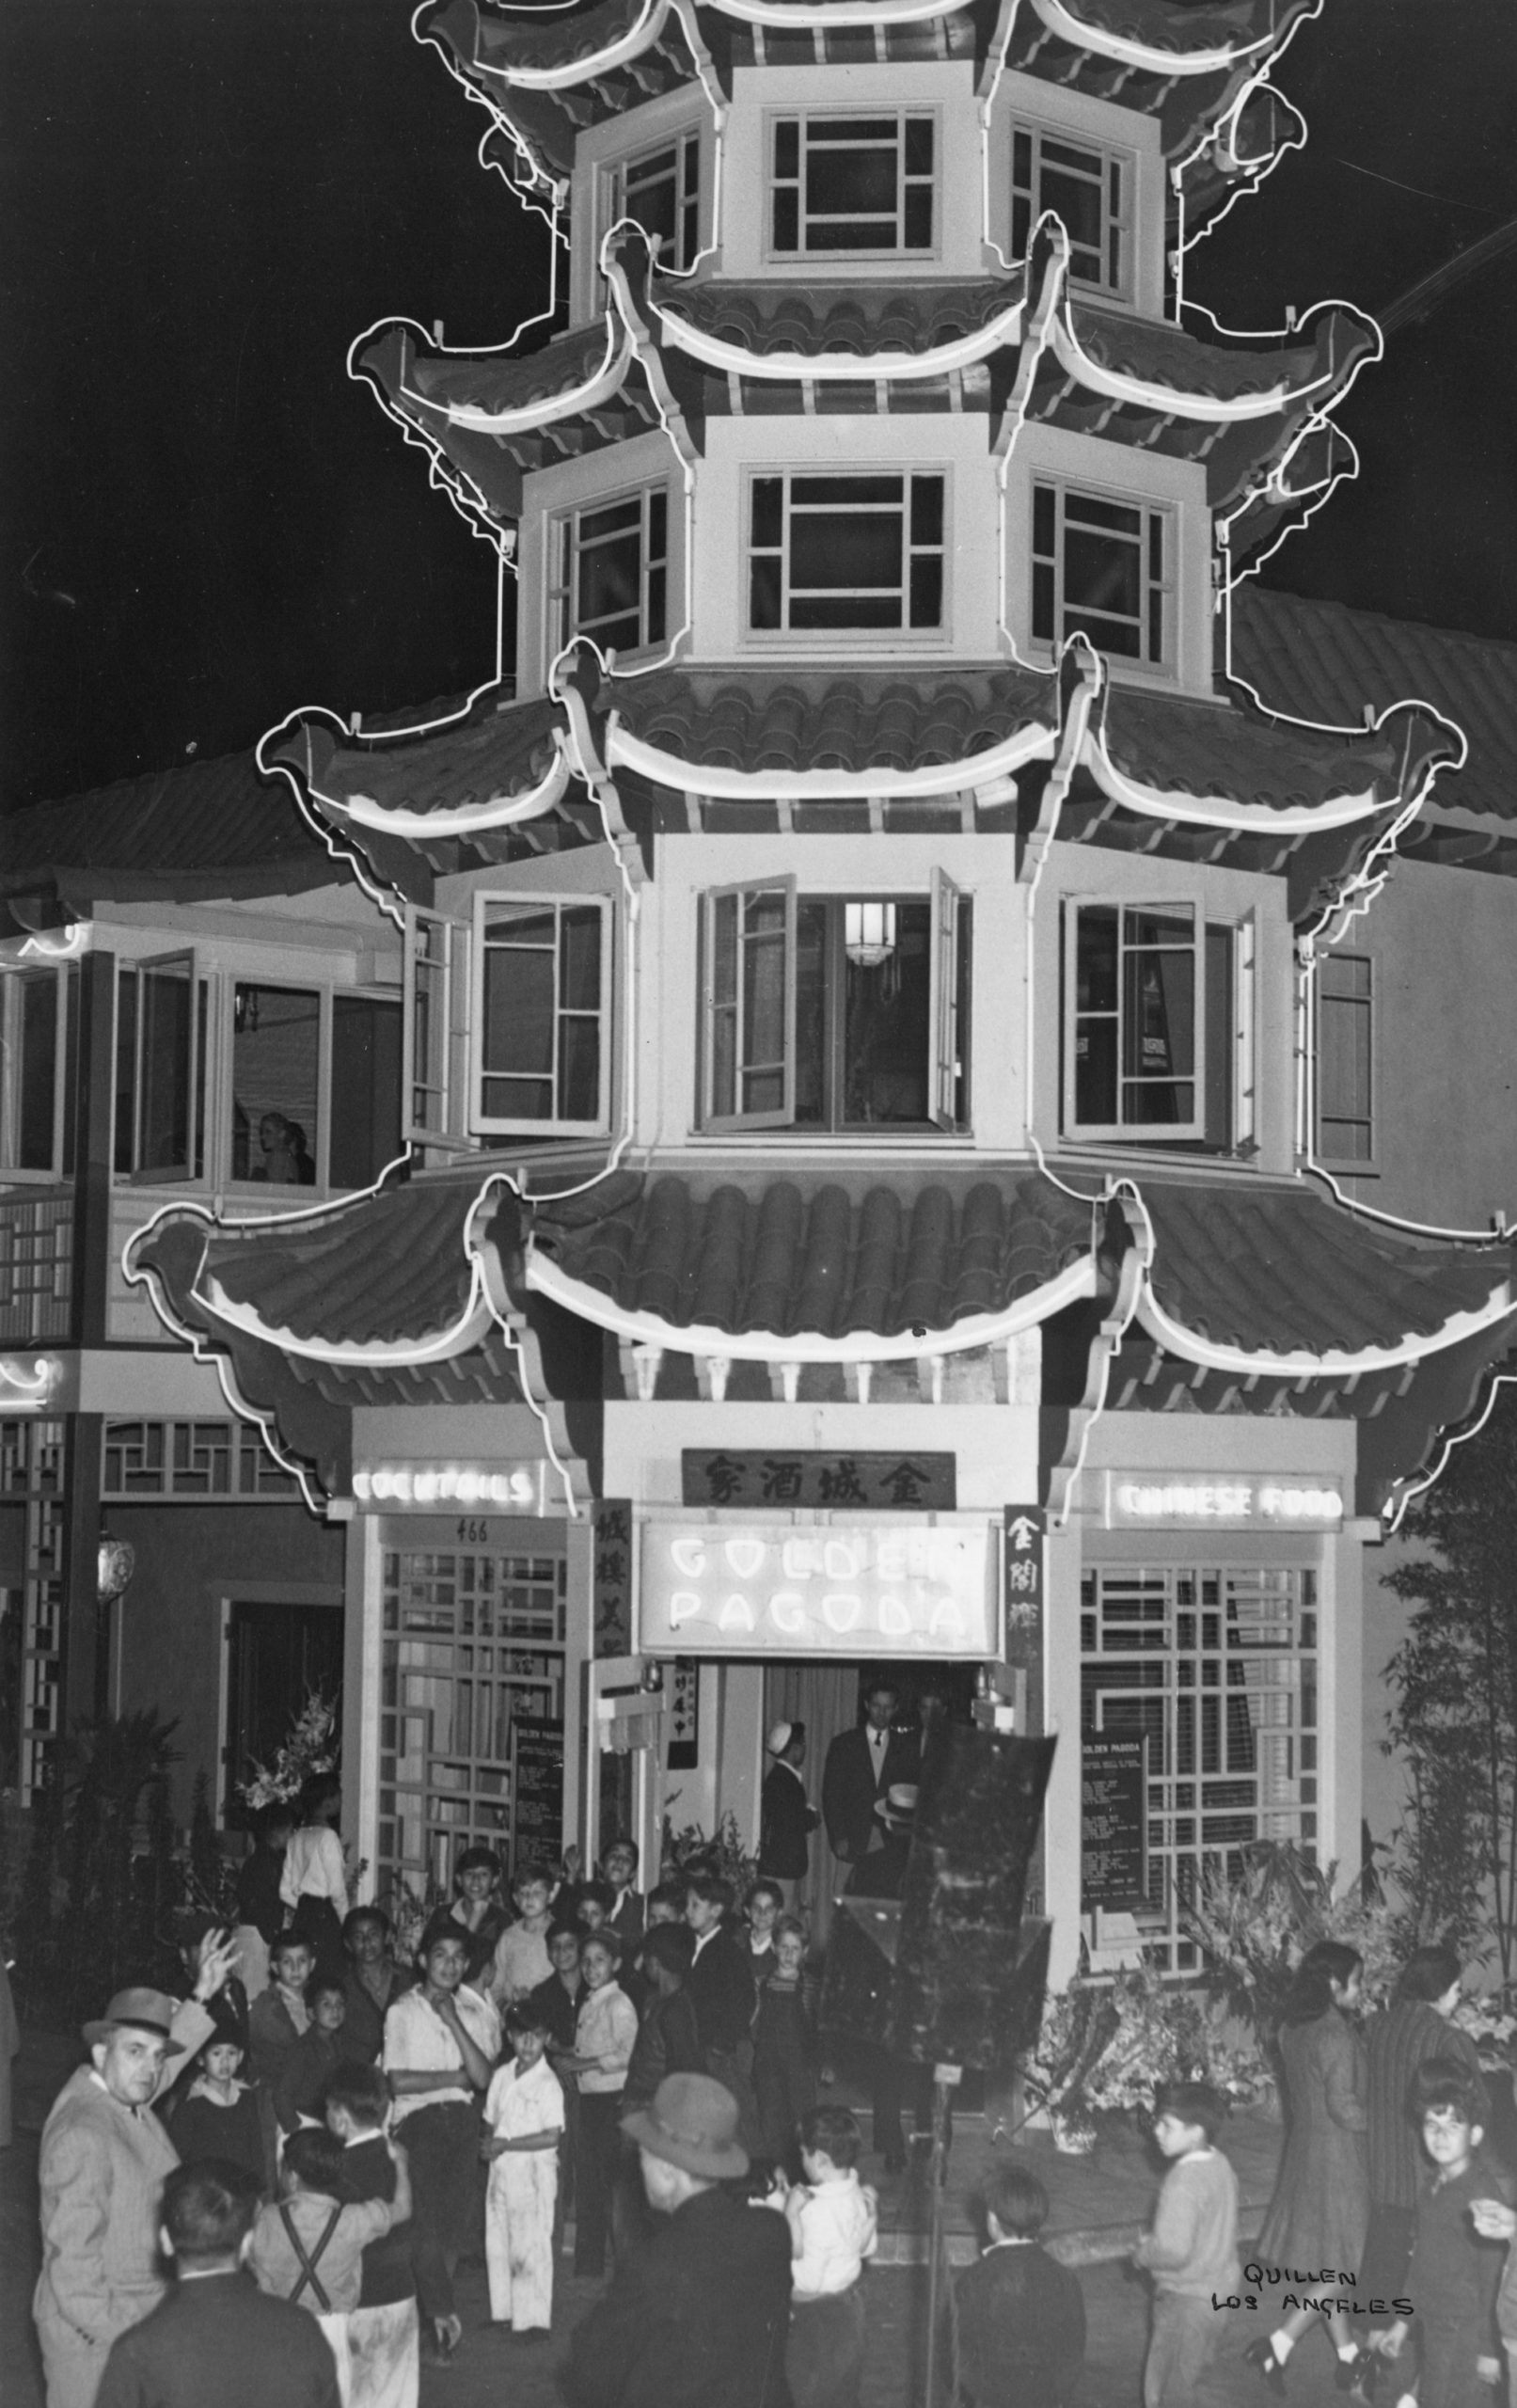 The Golden Pagoda building, later Hop Louie (1940s)